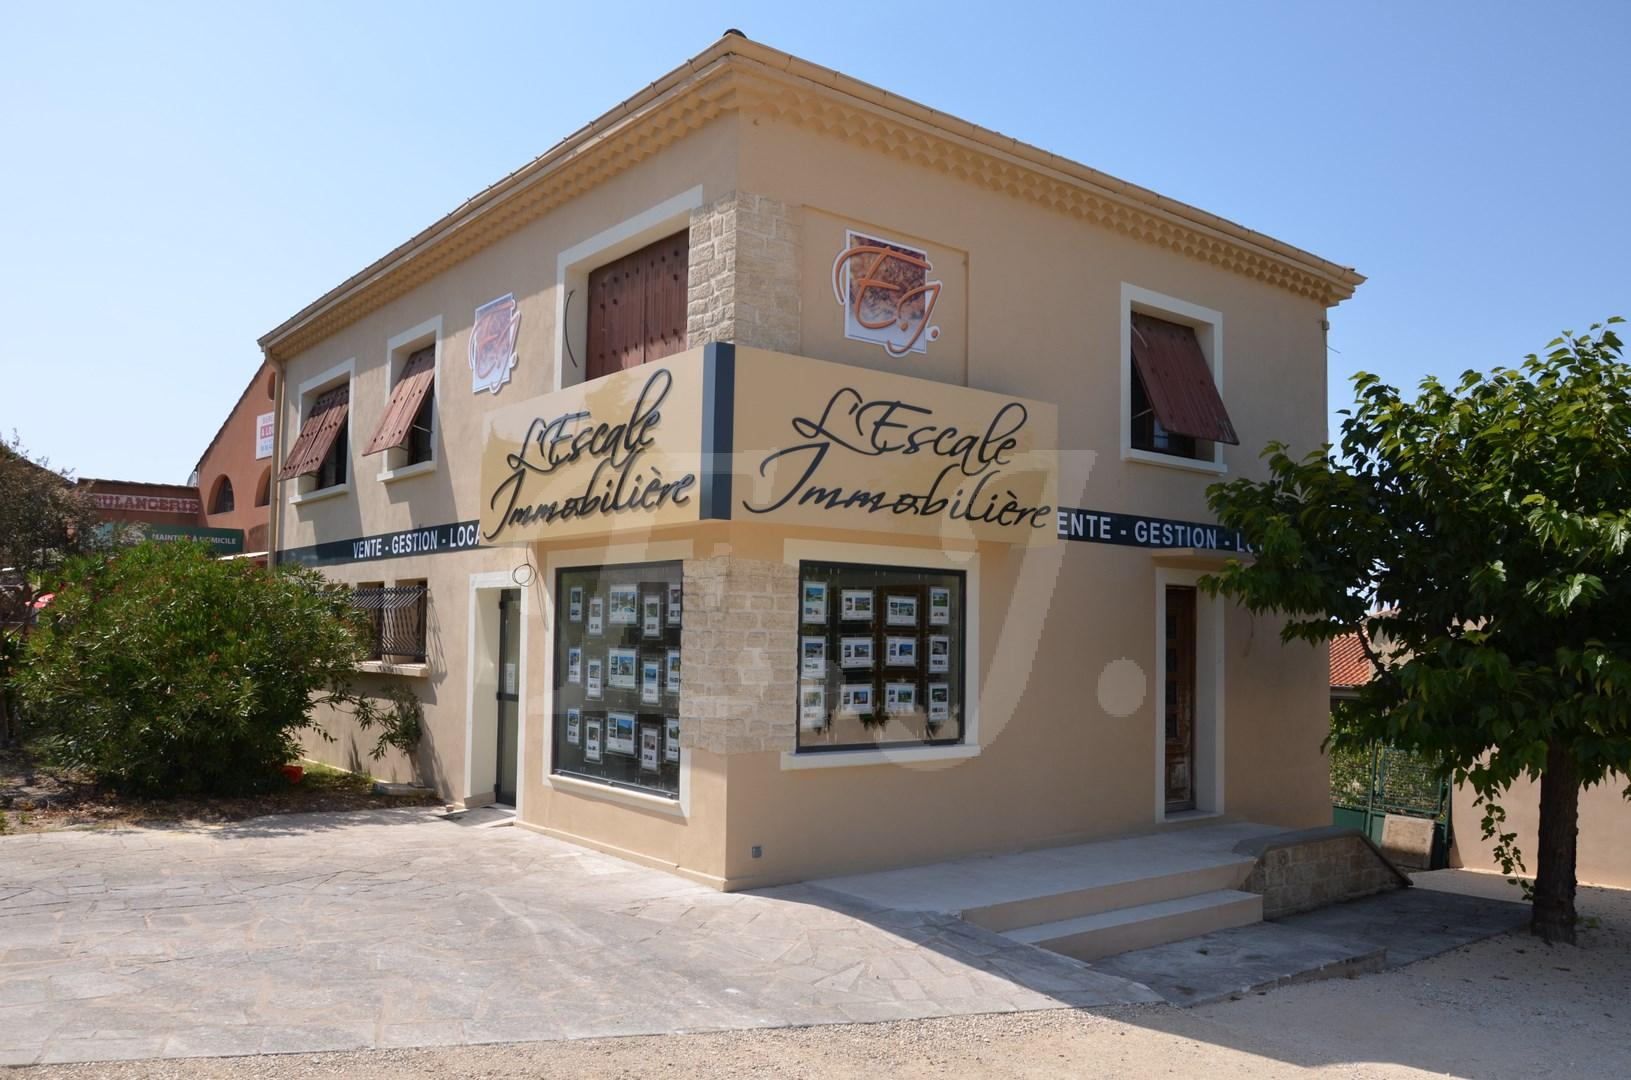 Agence immobiliere robion 84 luberon et vaucluse l for Agence immobiliere 84